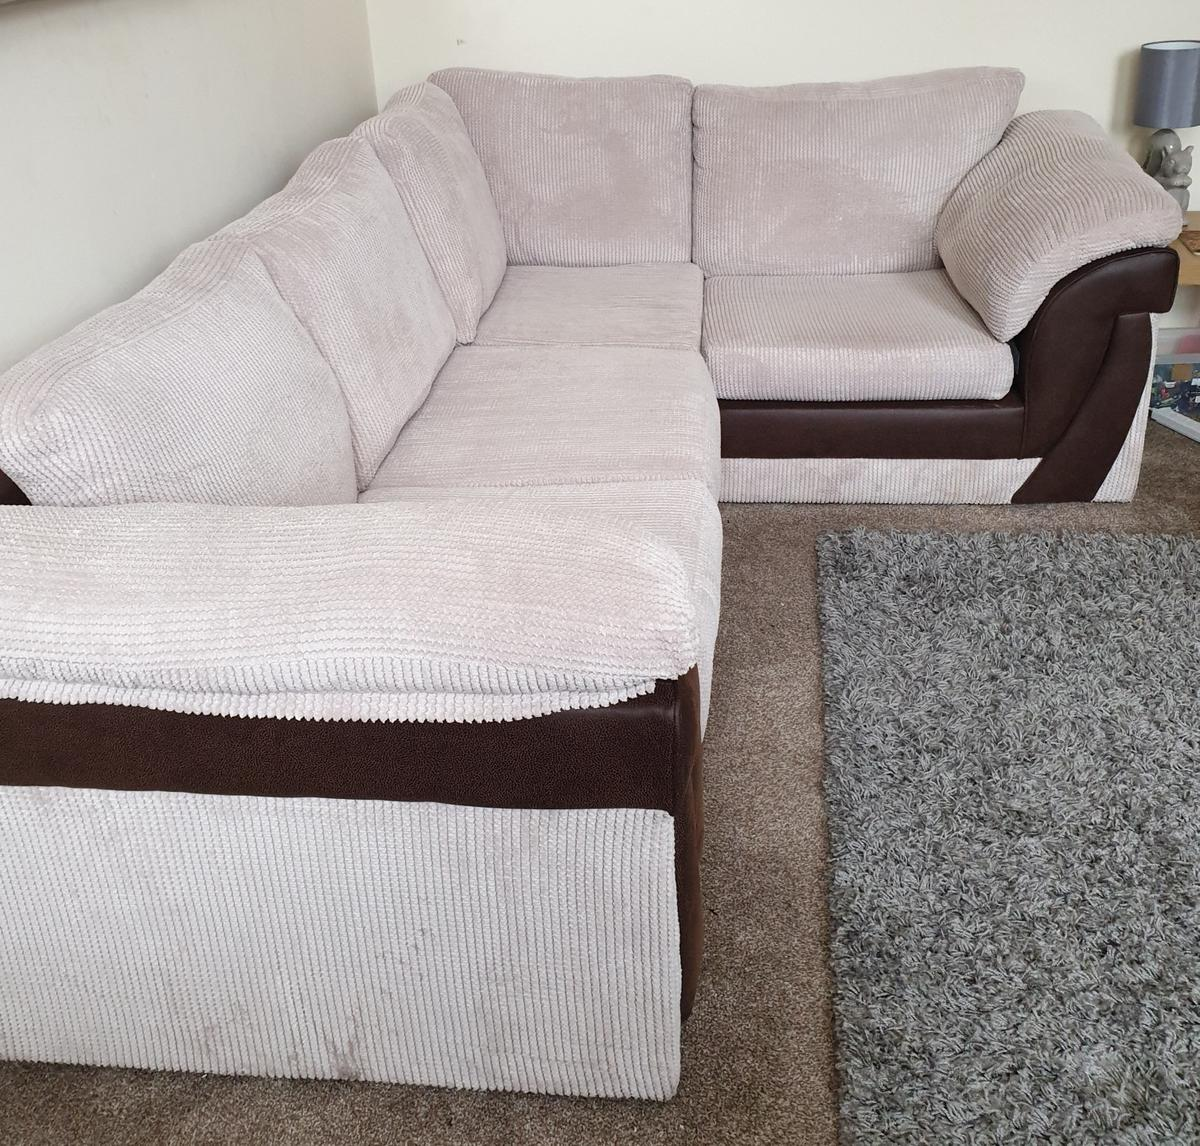 CORNER GROUP SOFA FOR SALE £180 in M6 Salford for £180.00 ...